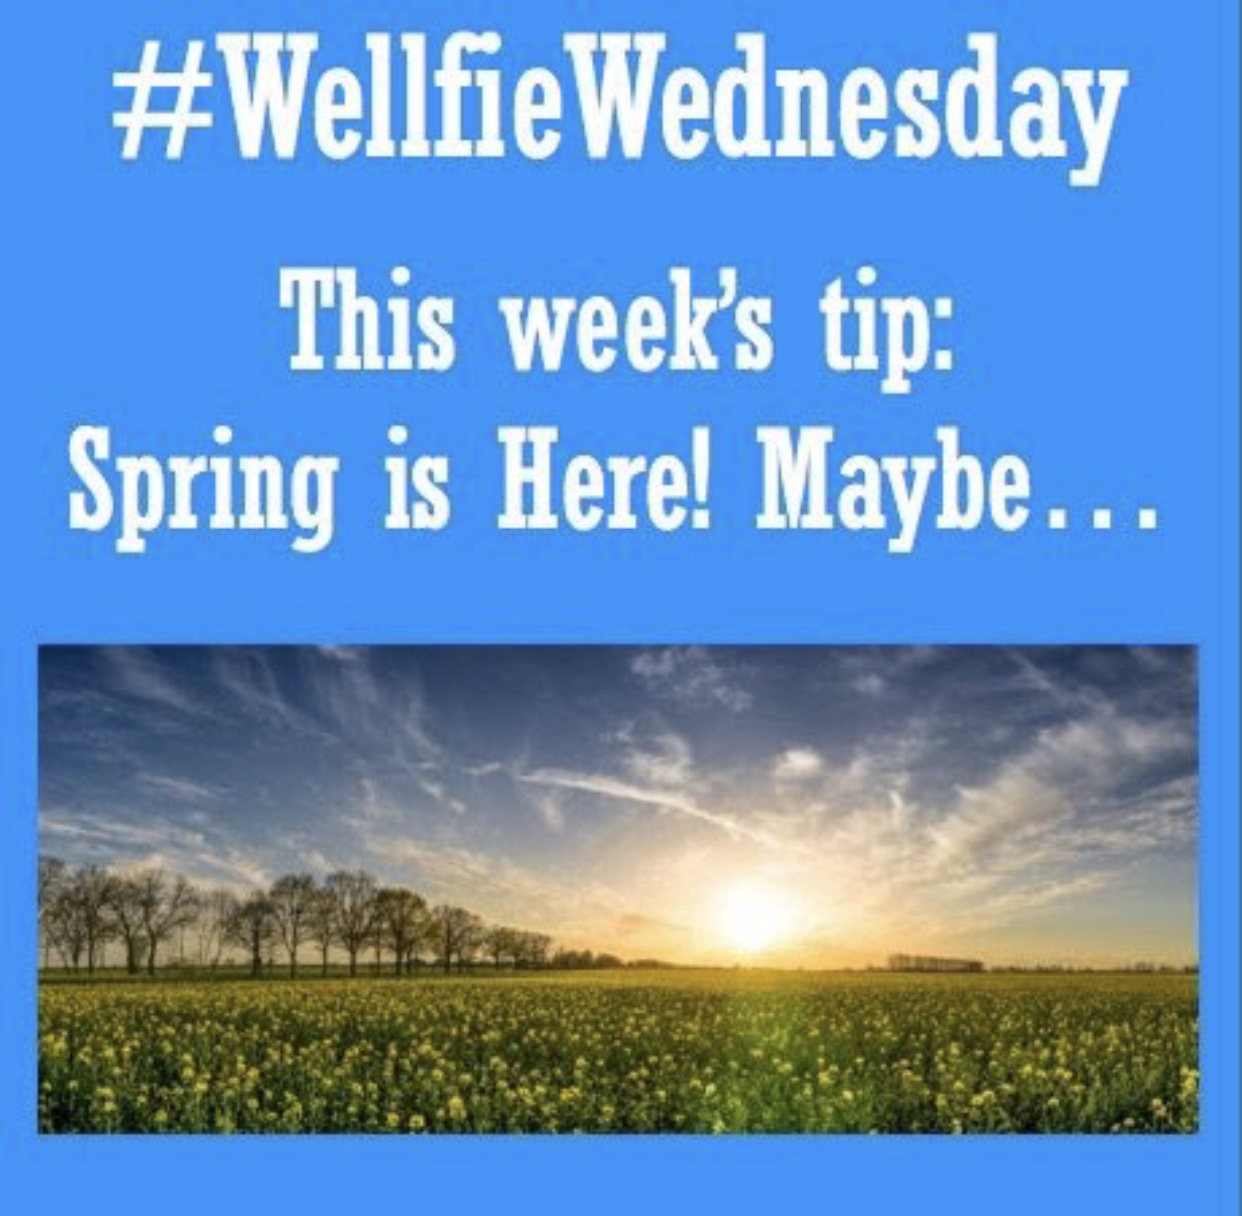 Wellfie Wednesday Blog Post: Spring is here! Maybe...